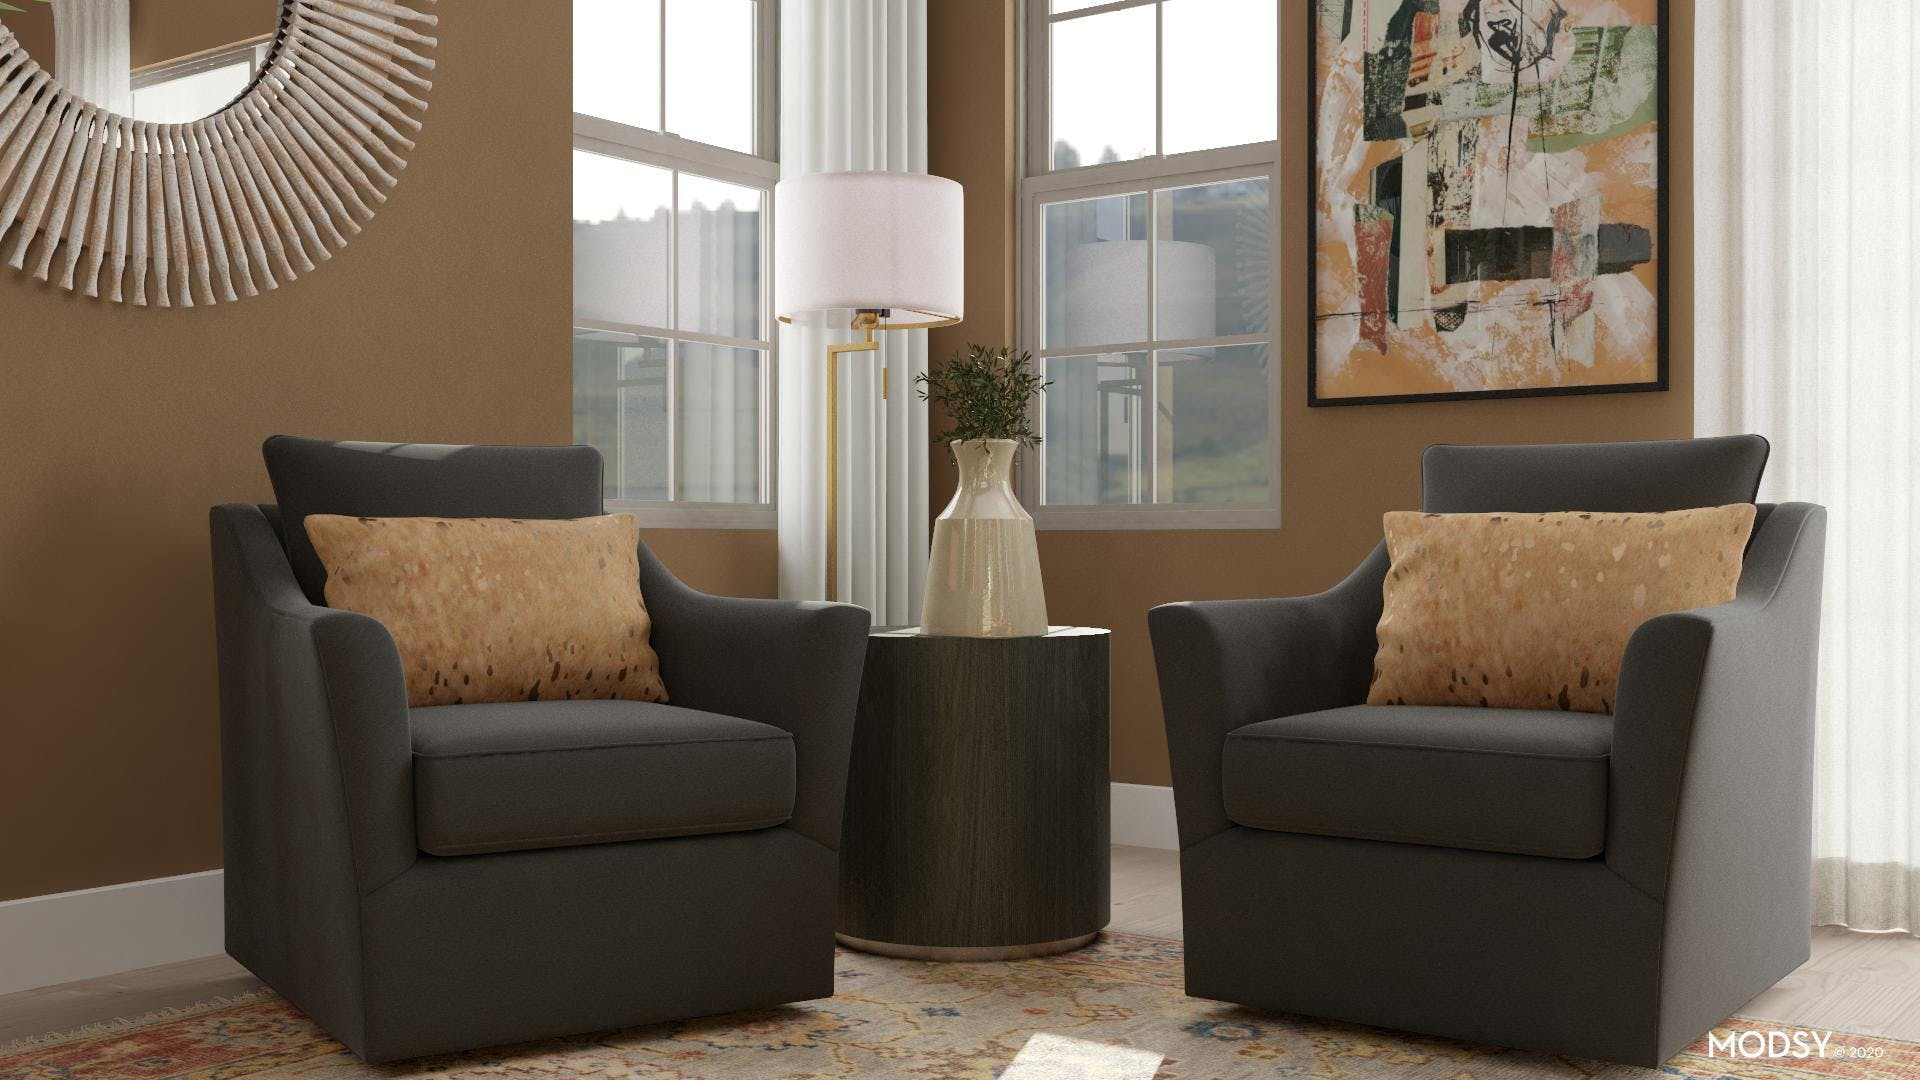 Traditional Seating With Earth Tones